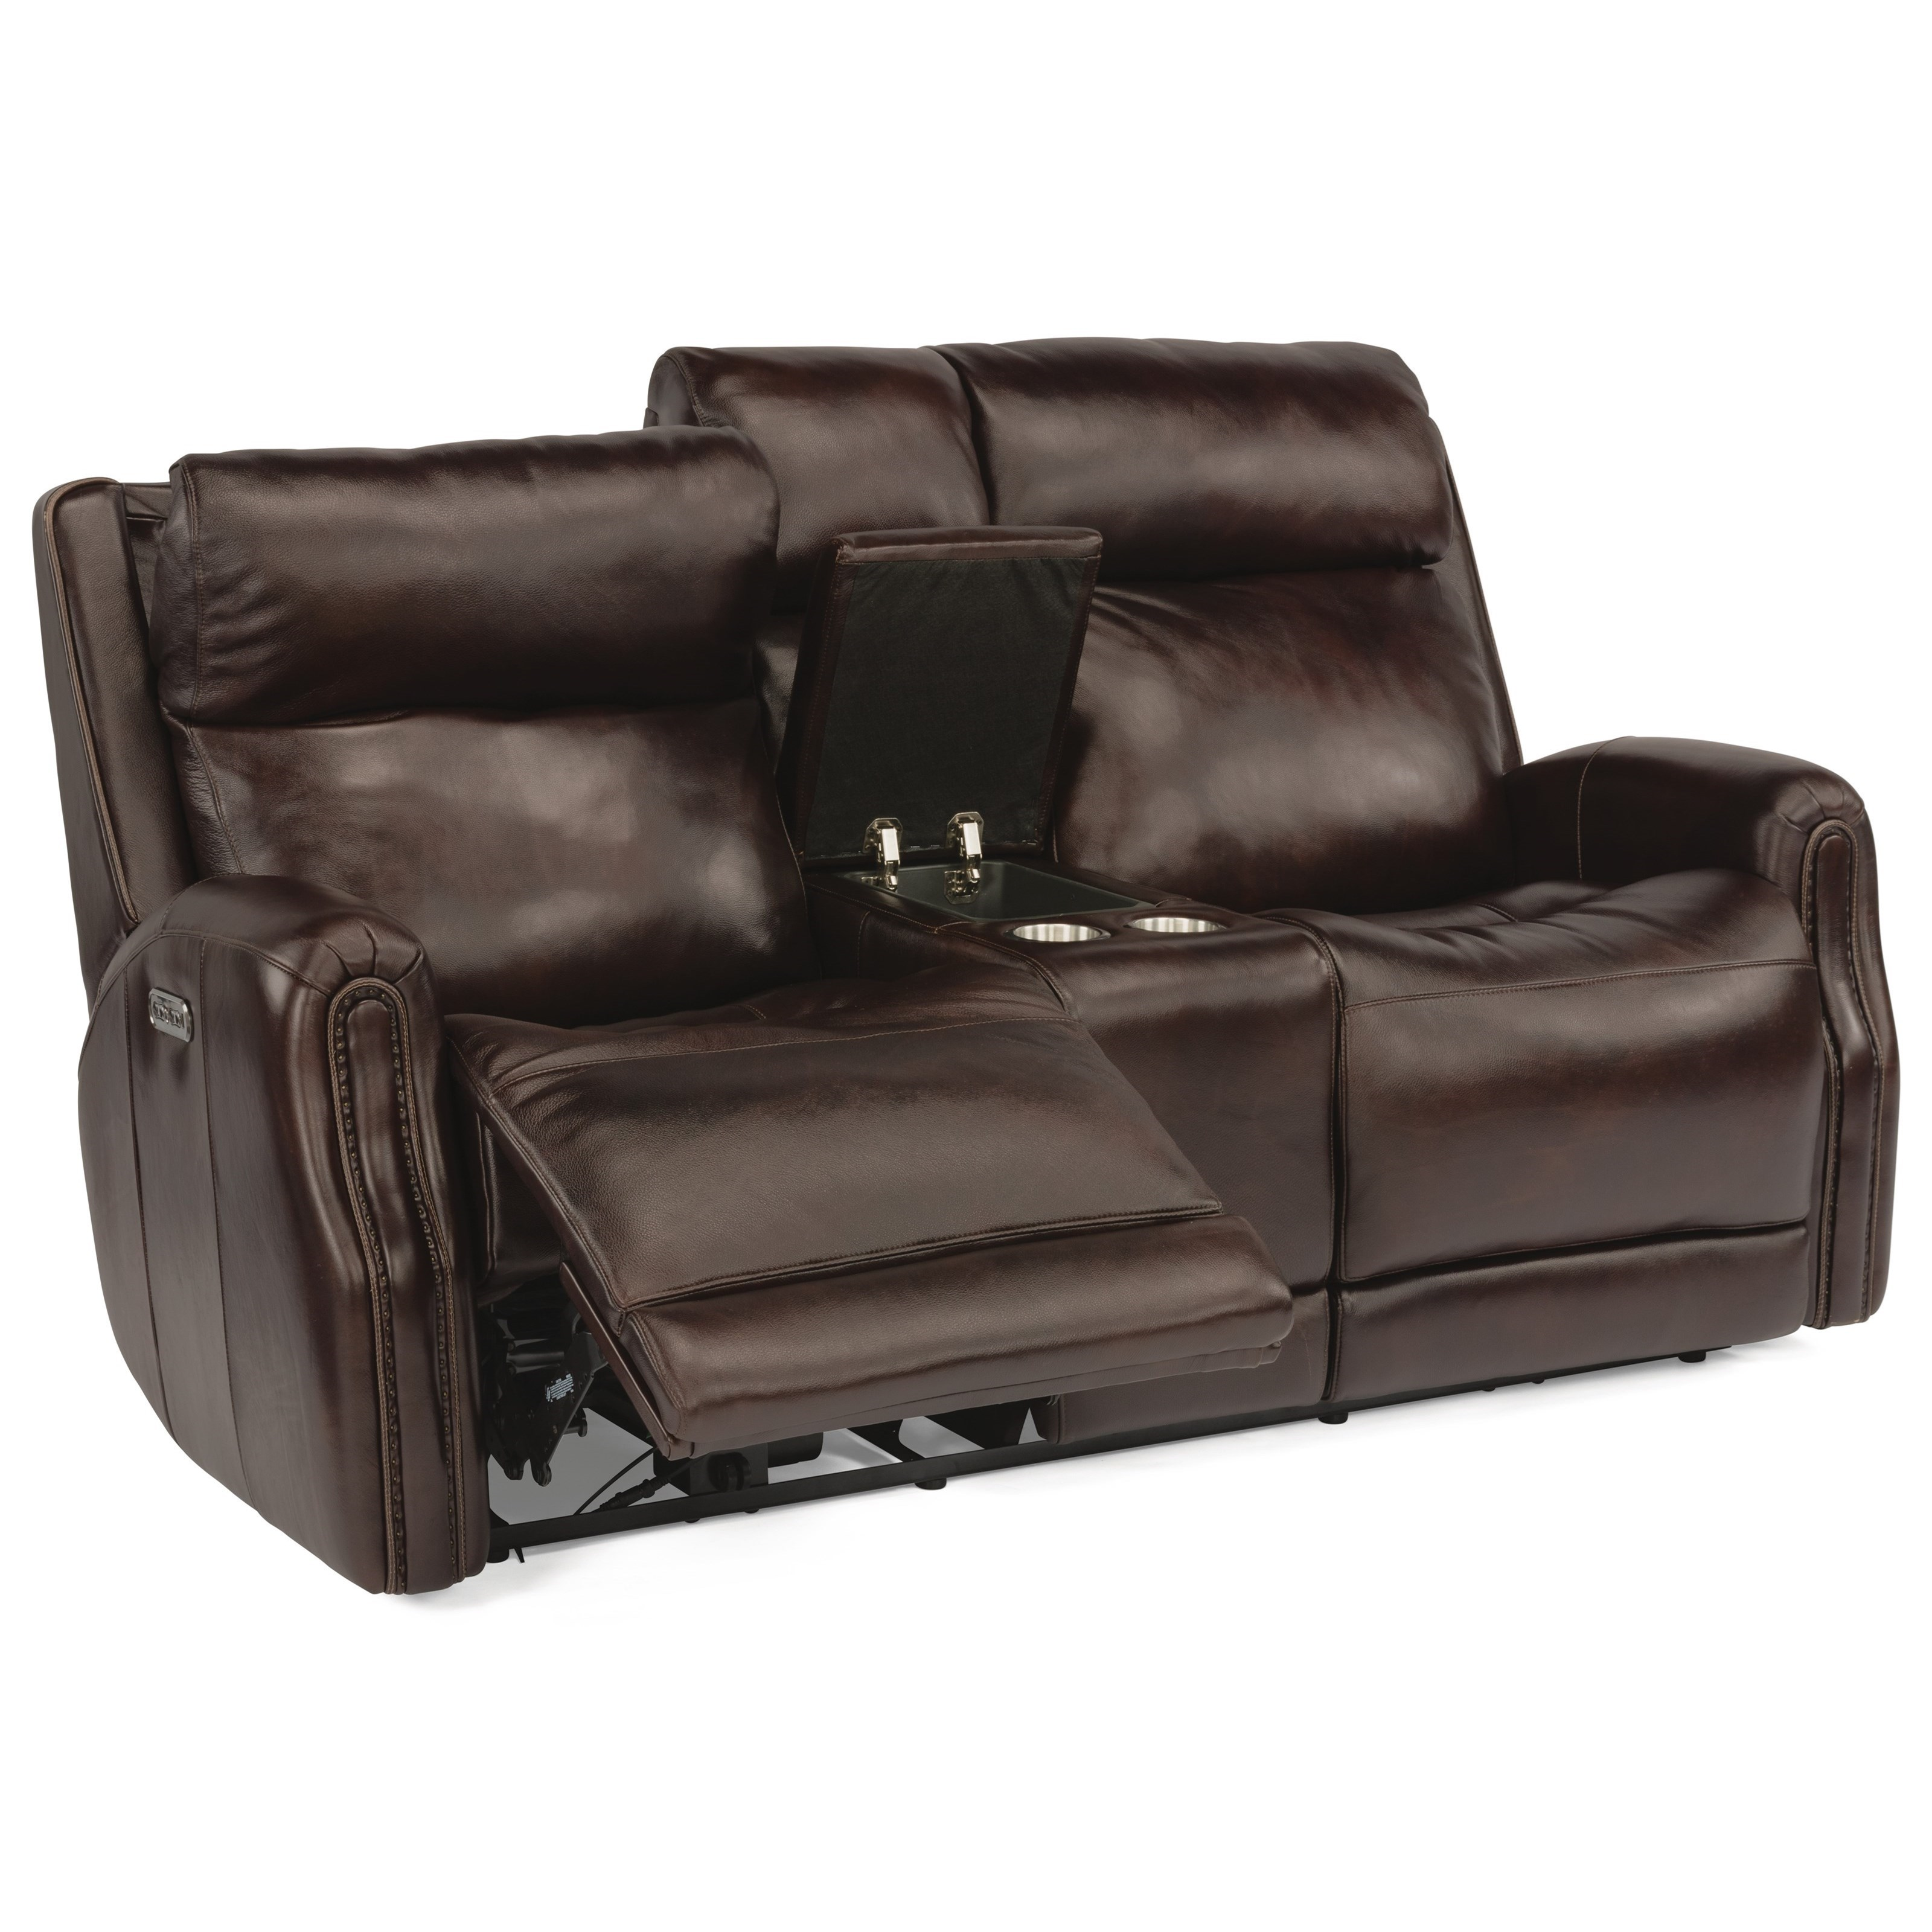 Latitudes - Stanley Power Reclining Leather Console Loveseat by Flexsteel at Walker's Furniture